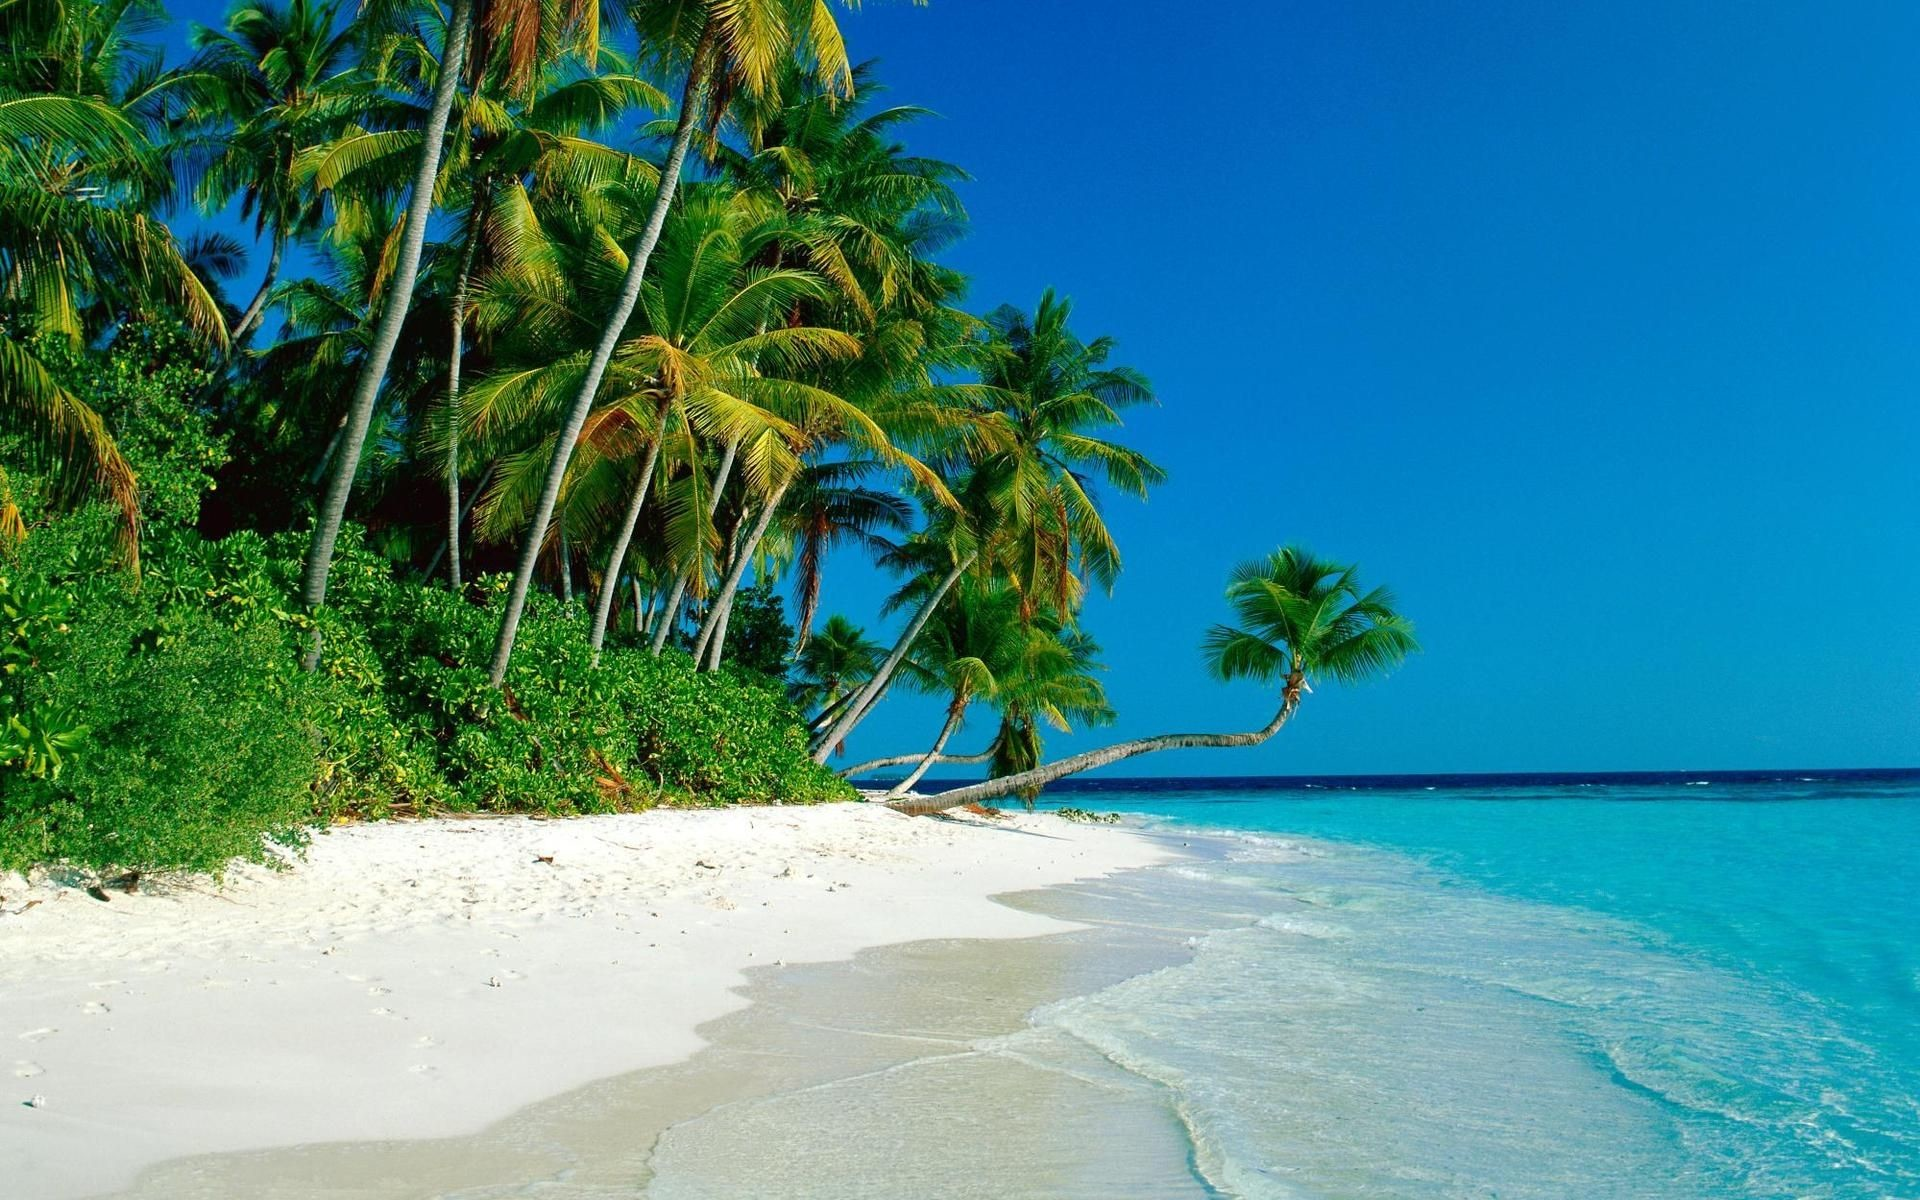 Res: 1920x1200, Tropical Island Wallpaper - http://whatstrendingonline.com/tropical-island- wallpaper/